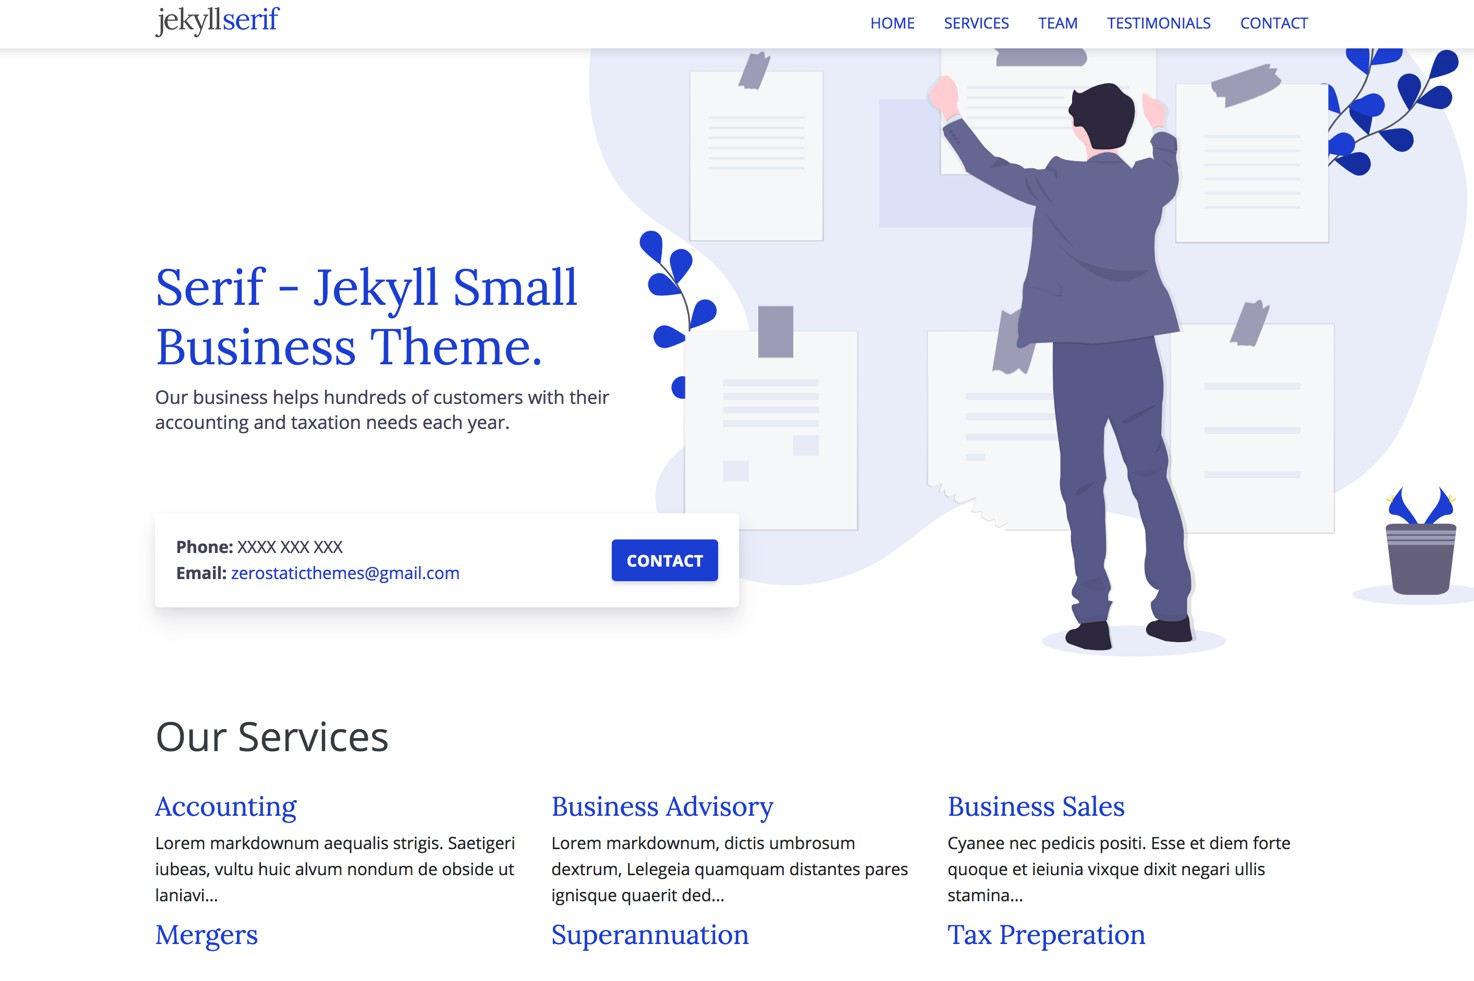 Serif is a beautiful small business theme for Jekyll